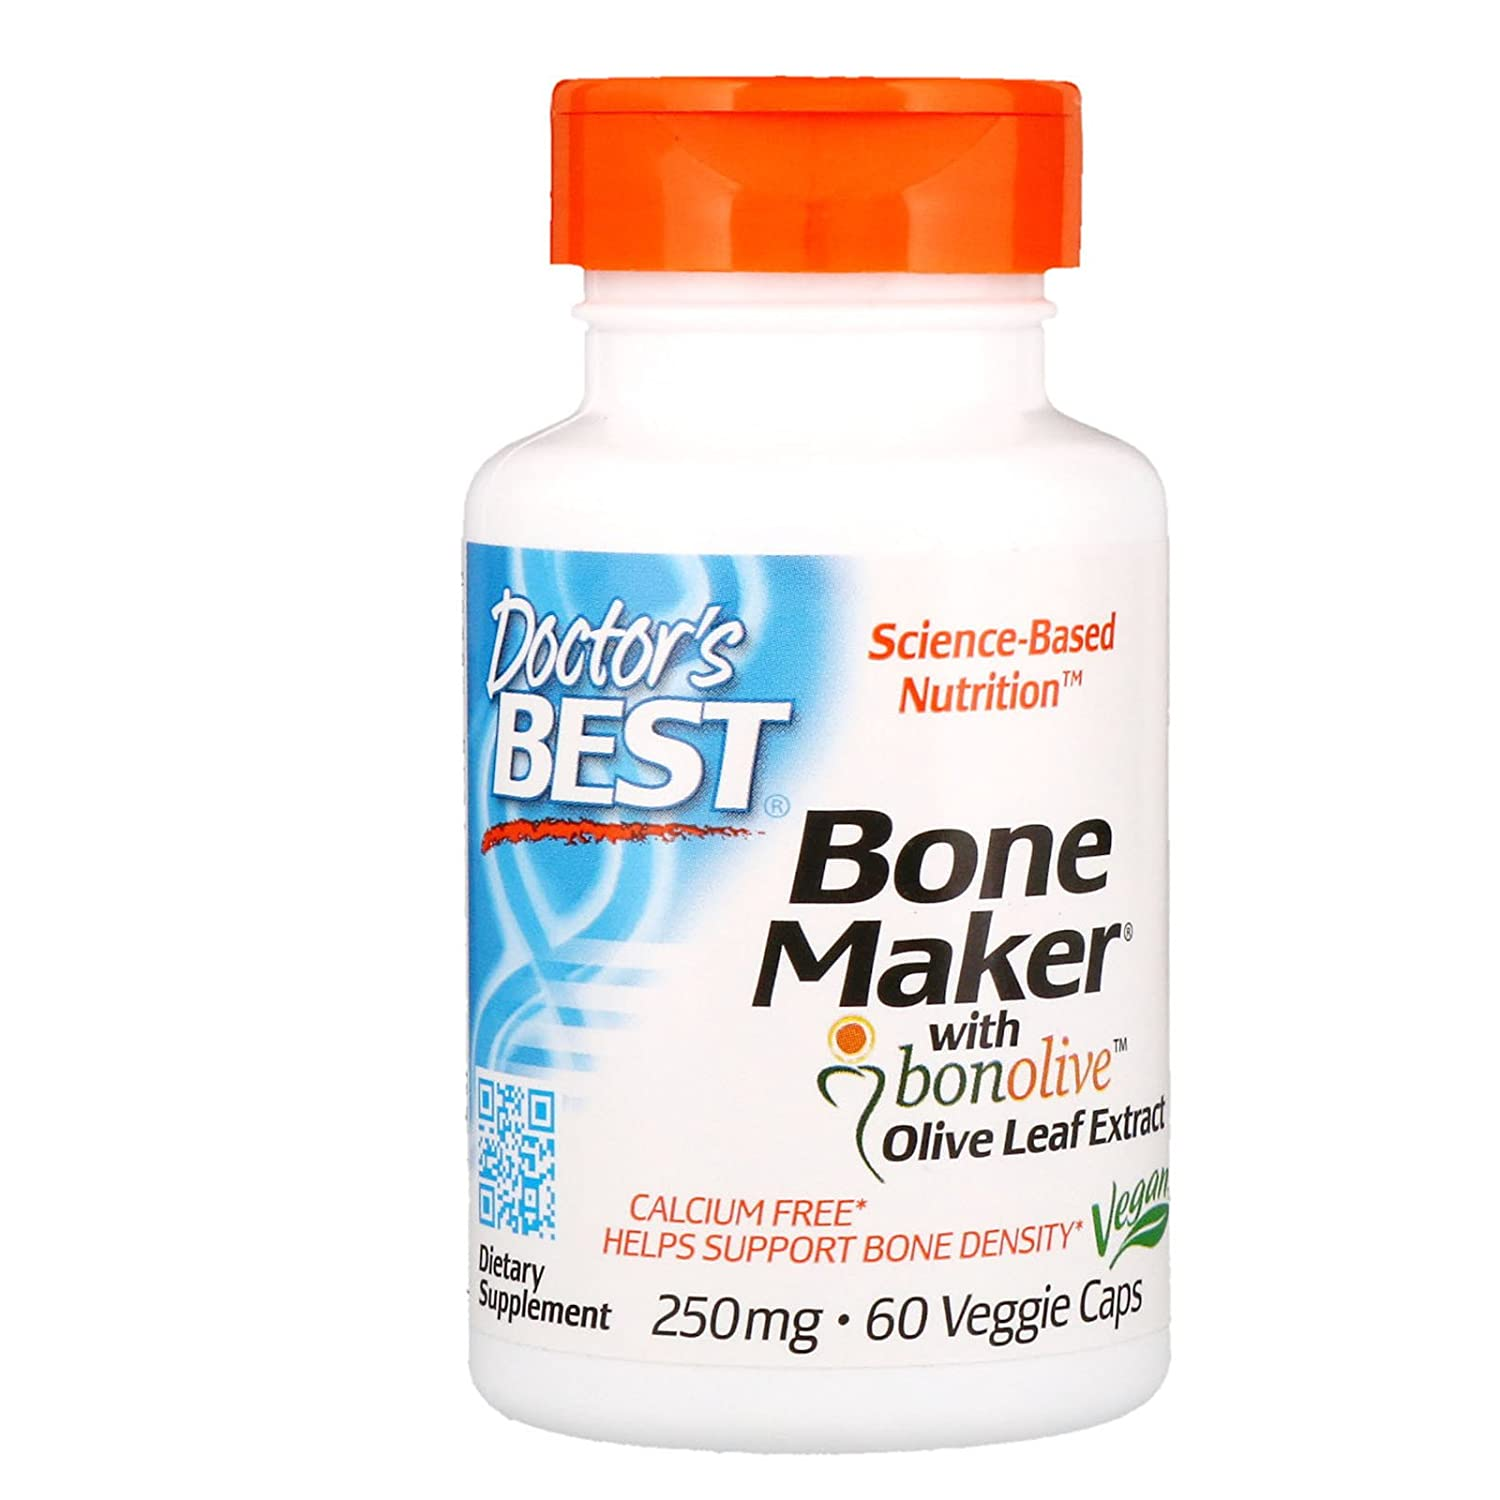 Amazon.com: Doctors Best Bone Maker with Bonolive, Non-GMO, Vegan, Gluten Free, Soy Free, Helps Increase Bone Density, 250 mg, 60 Veggie Caps: Health ...